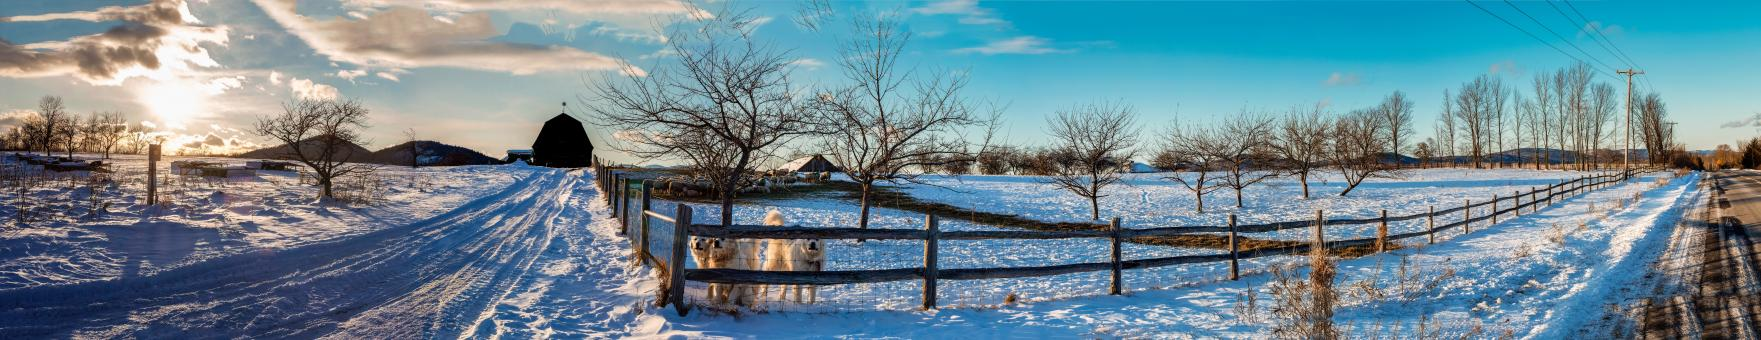 Free Stock Photo of Farm in Winter - Panorama